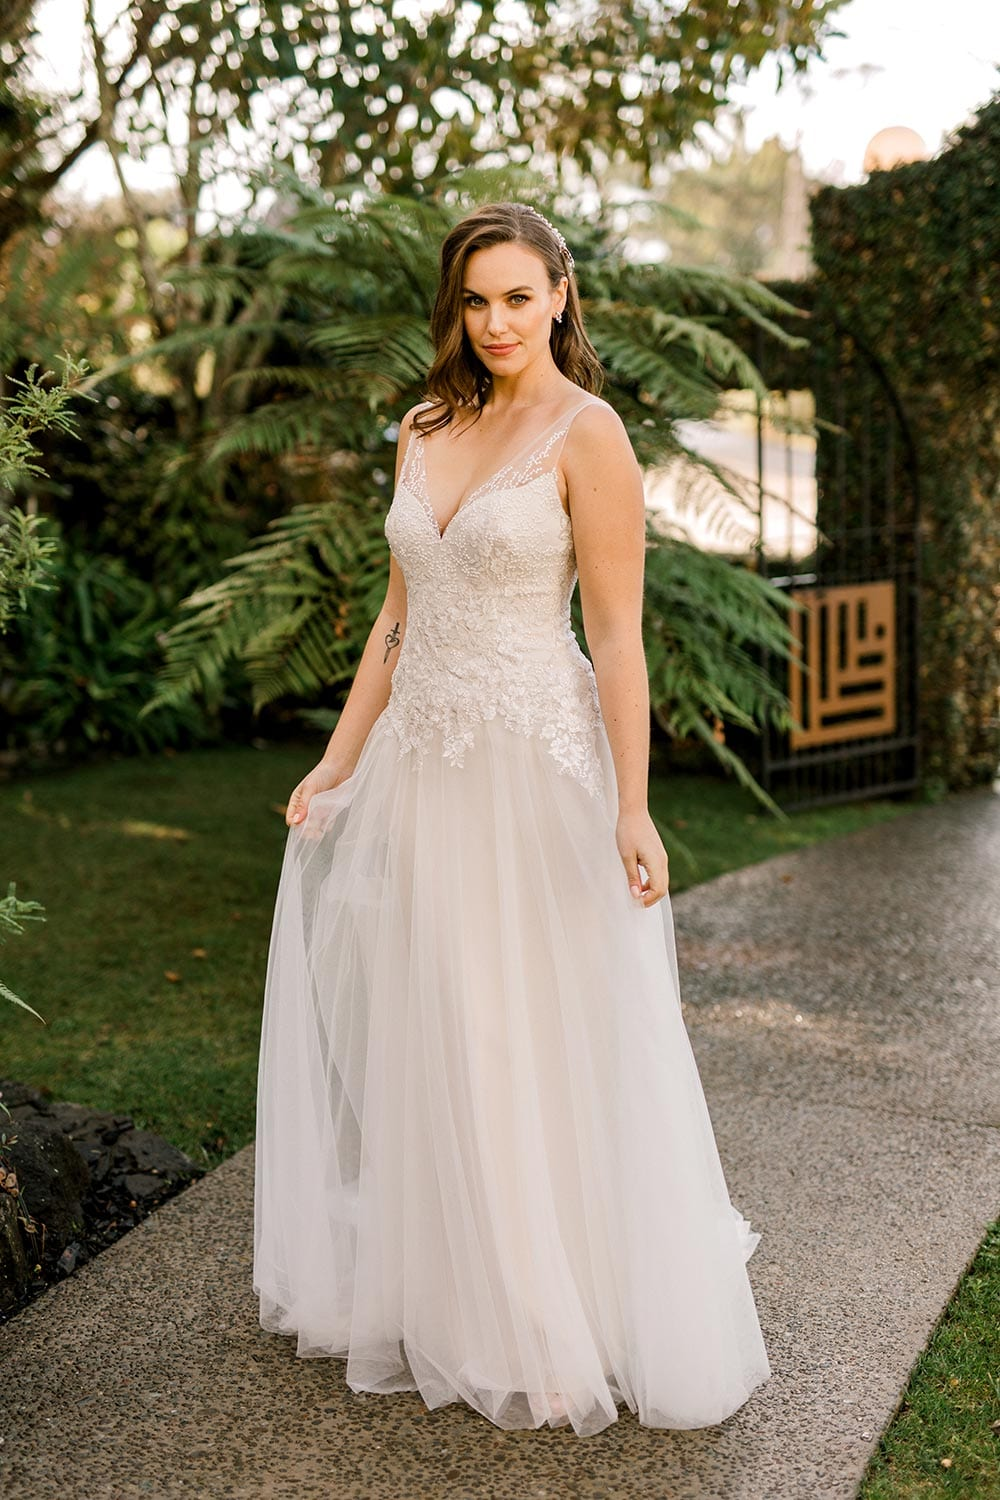 Hazel Wedding Dress from Vinka Design. Wedding dress with highly-sculptured bodice down to the hipline, at which point it gently flares into a beautiful and dreamy tulle skirt and train. Beautiful and delicate embroidery. Full length dress with skirt held.